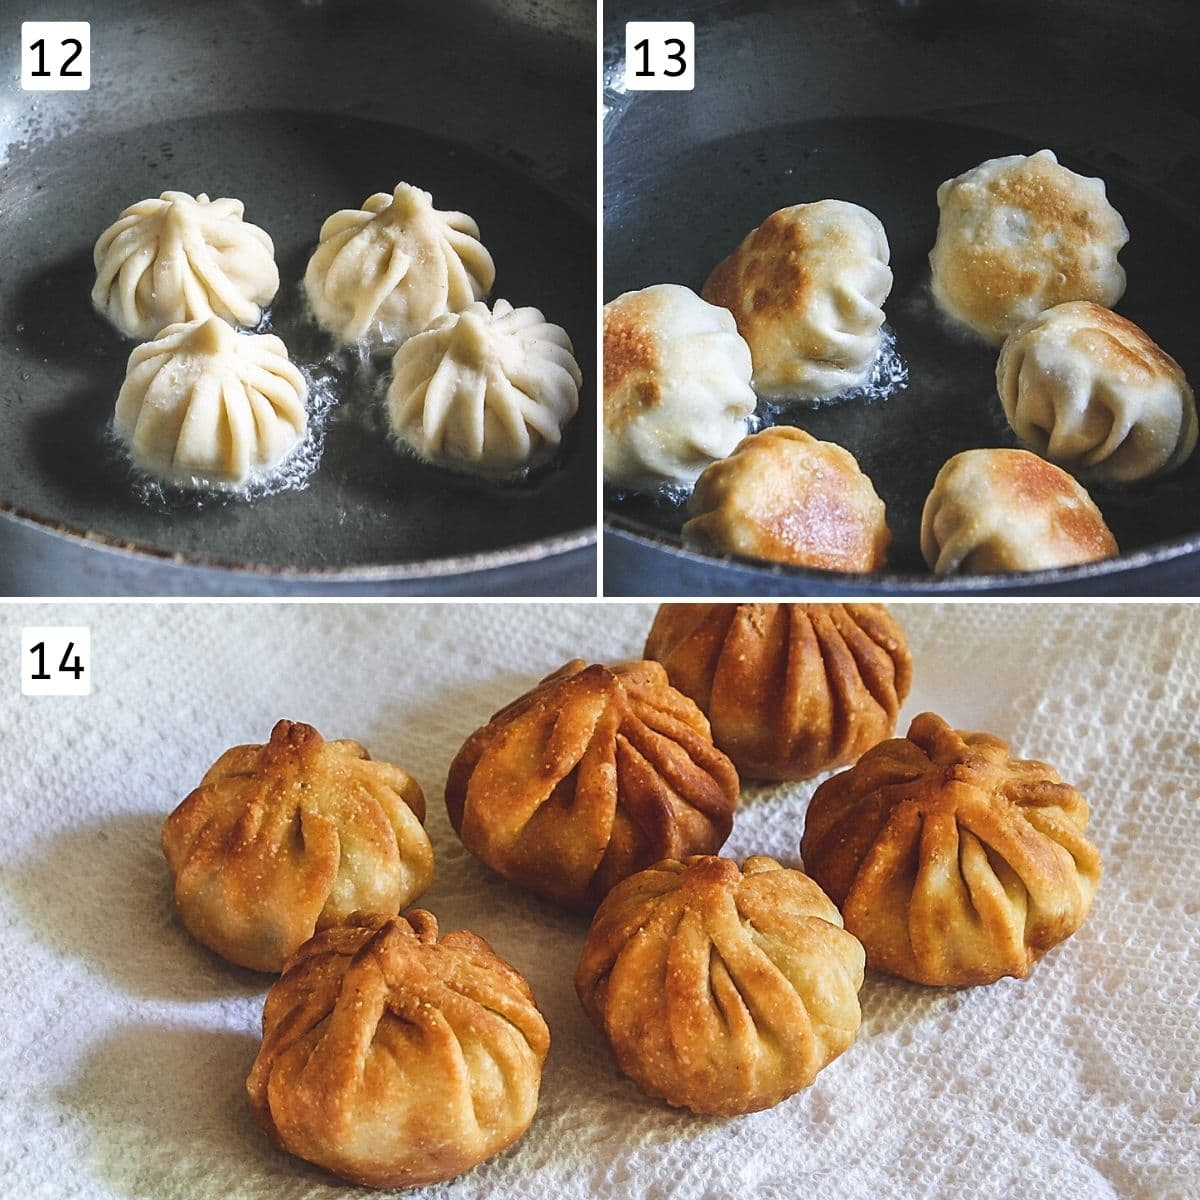 Collage of 3 images showing modaks added to oil, moved for even browning and ready fried modak on a plate